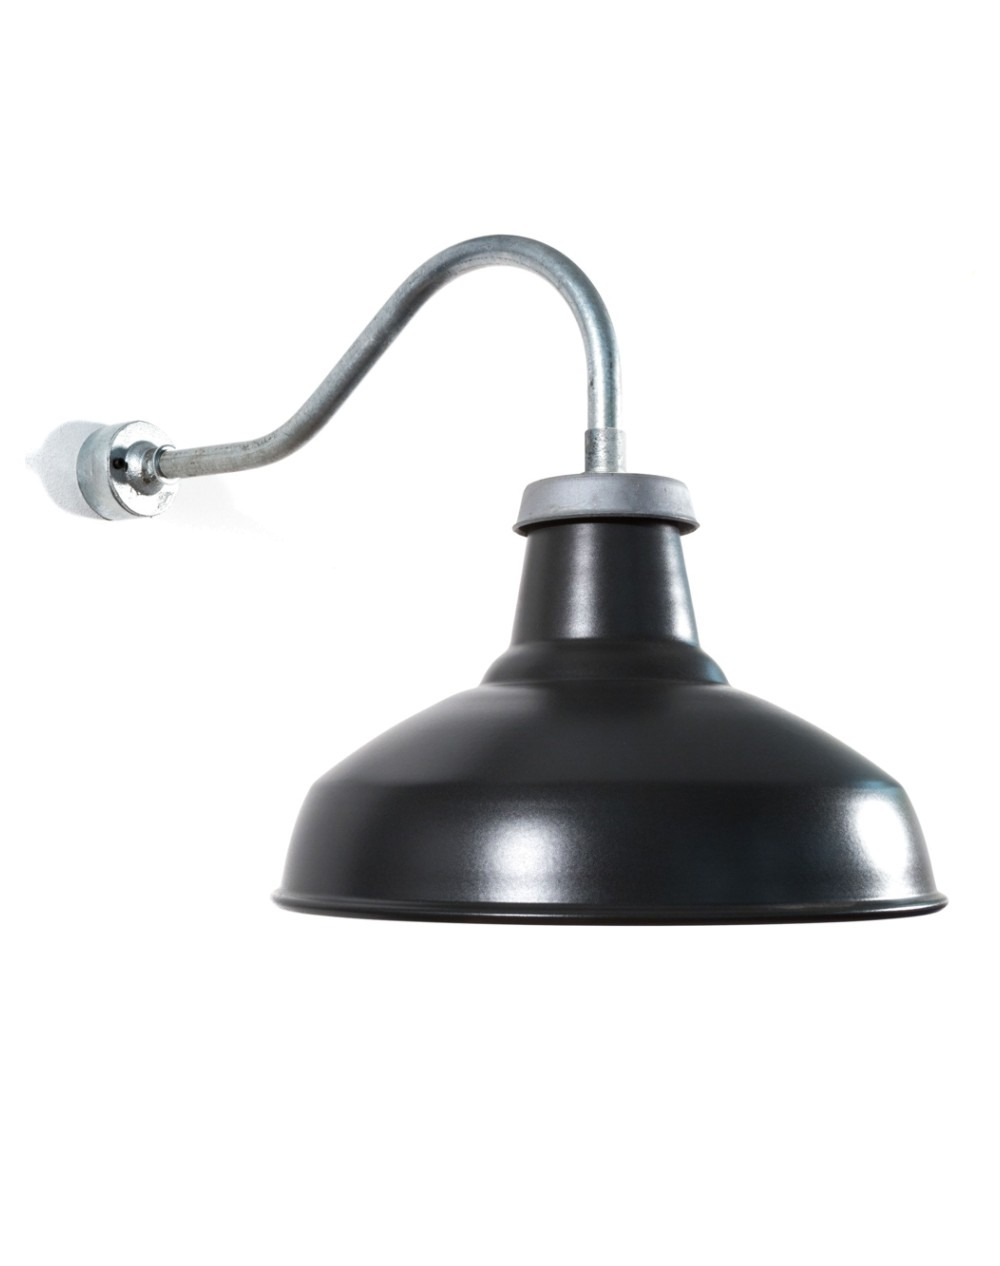 factorylux_industrial_swan_neck_wall_light_matt_black_shade_3